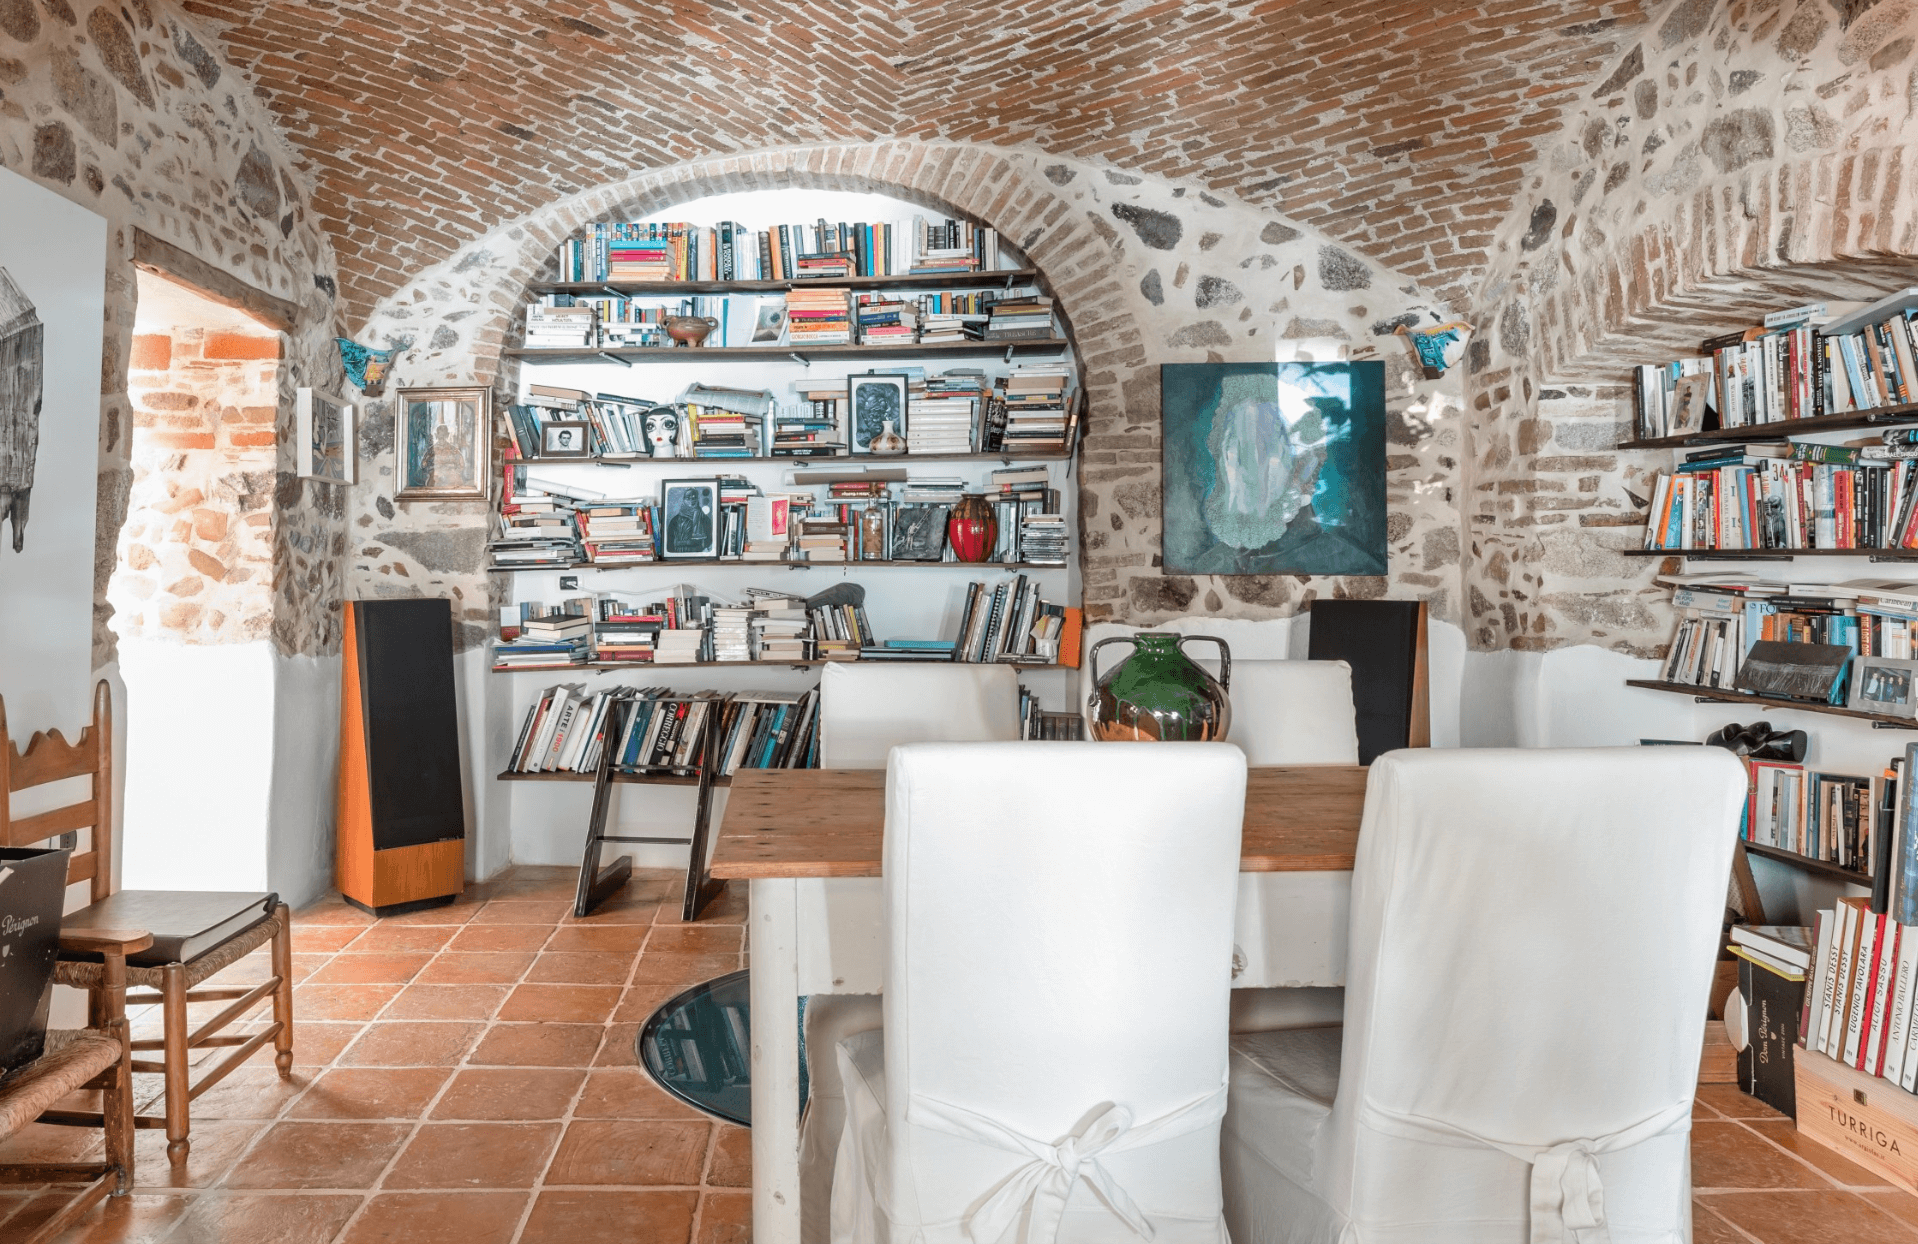 the dining room of an airbnb in Sardinia, Italy